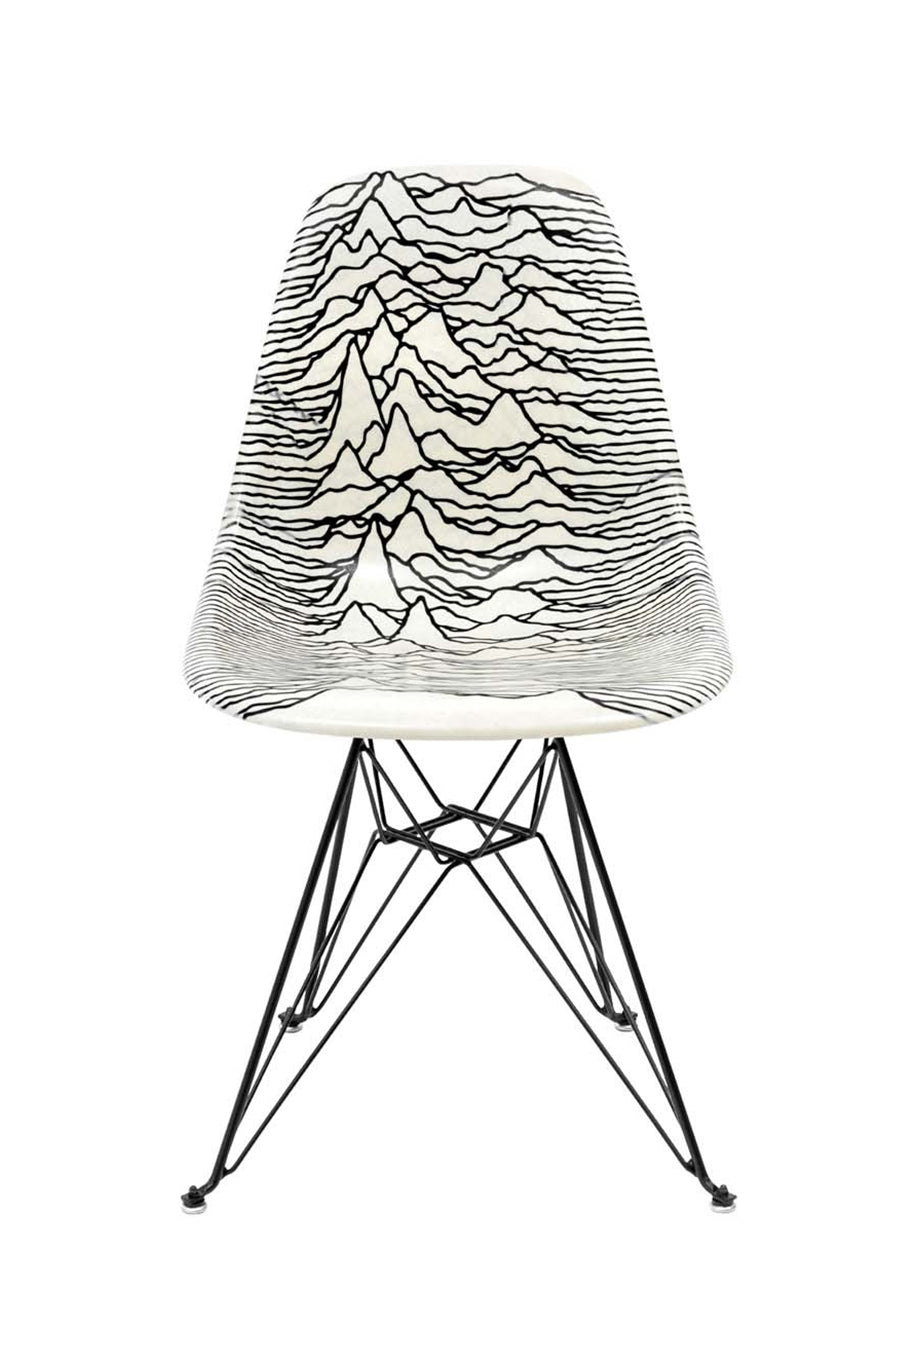 Pleasures x Modernica - White Unknown Pleasures Modernica Shell Chair